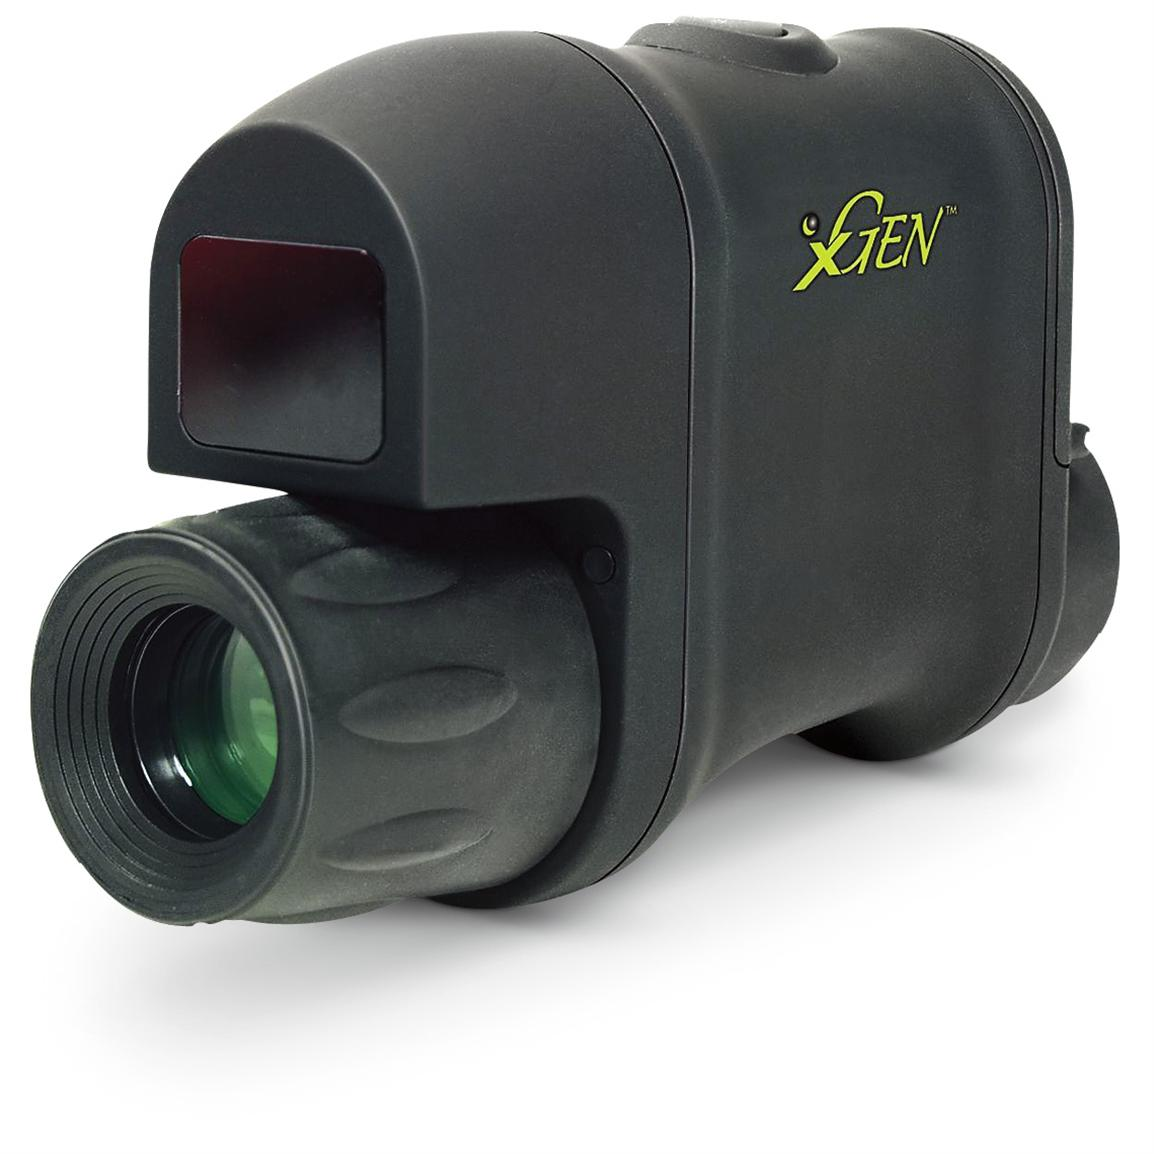 XGen 2.1X Magnification Night Vision Monocular